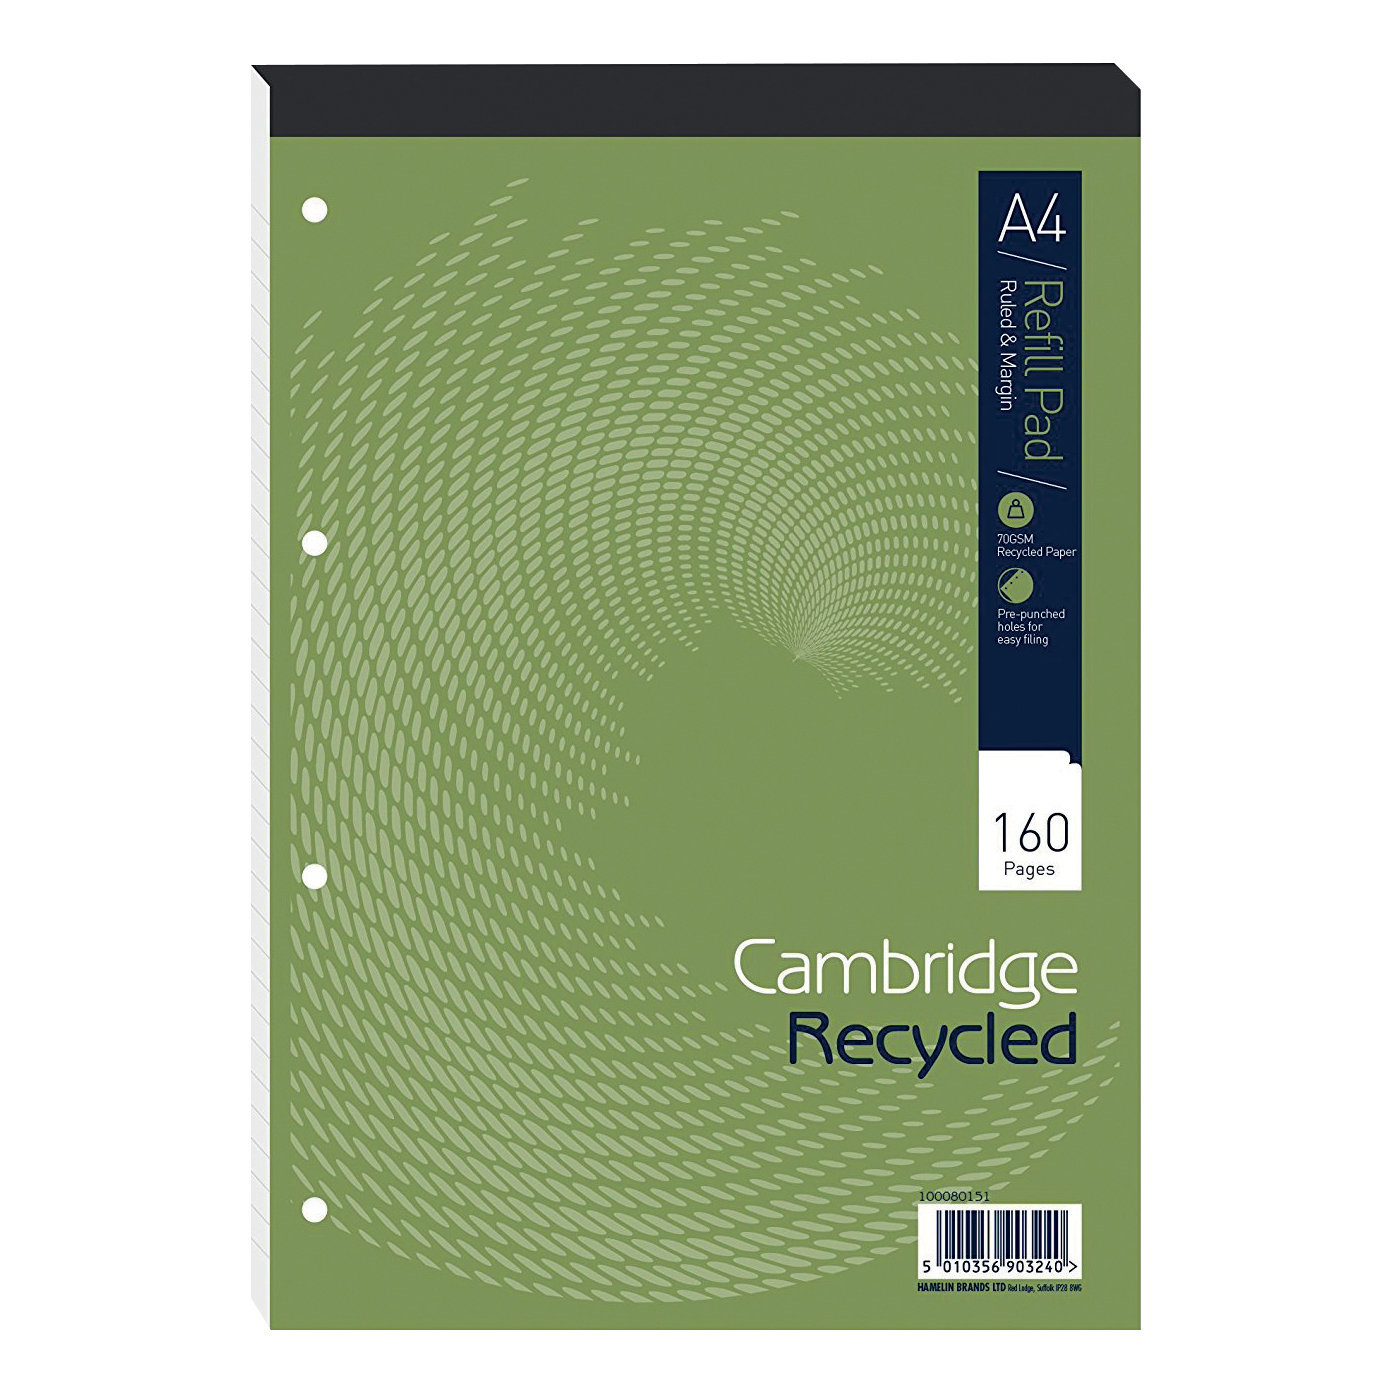 Cambridge Recycled Refill Pad Hbd 70gsm Ruled Margin Punch 4 Holes 160pp A4 Green Ref 100080151 [Pack 5]